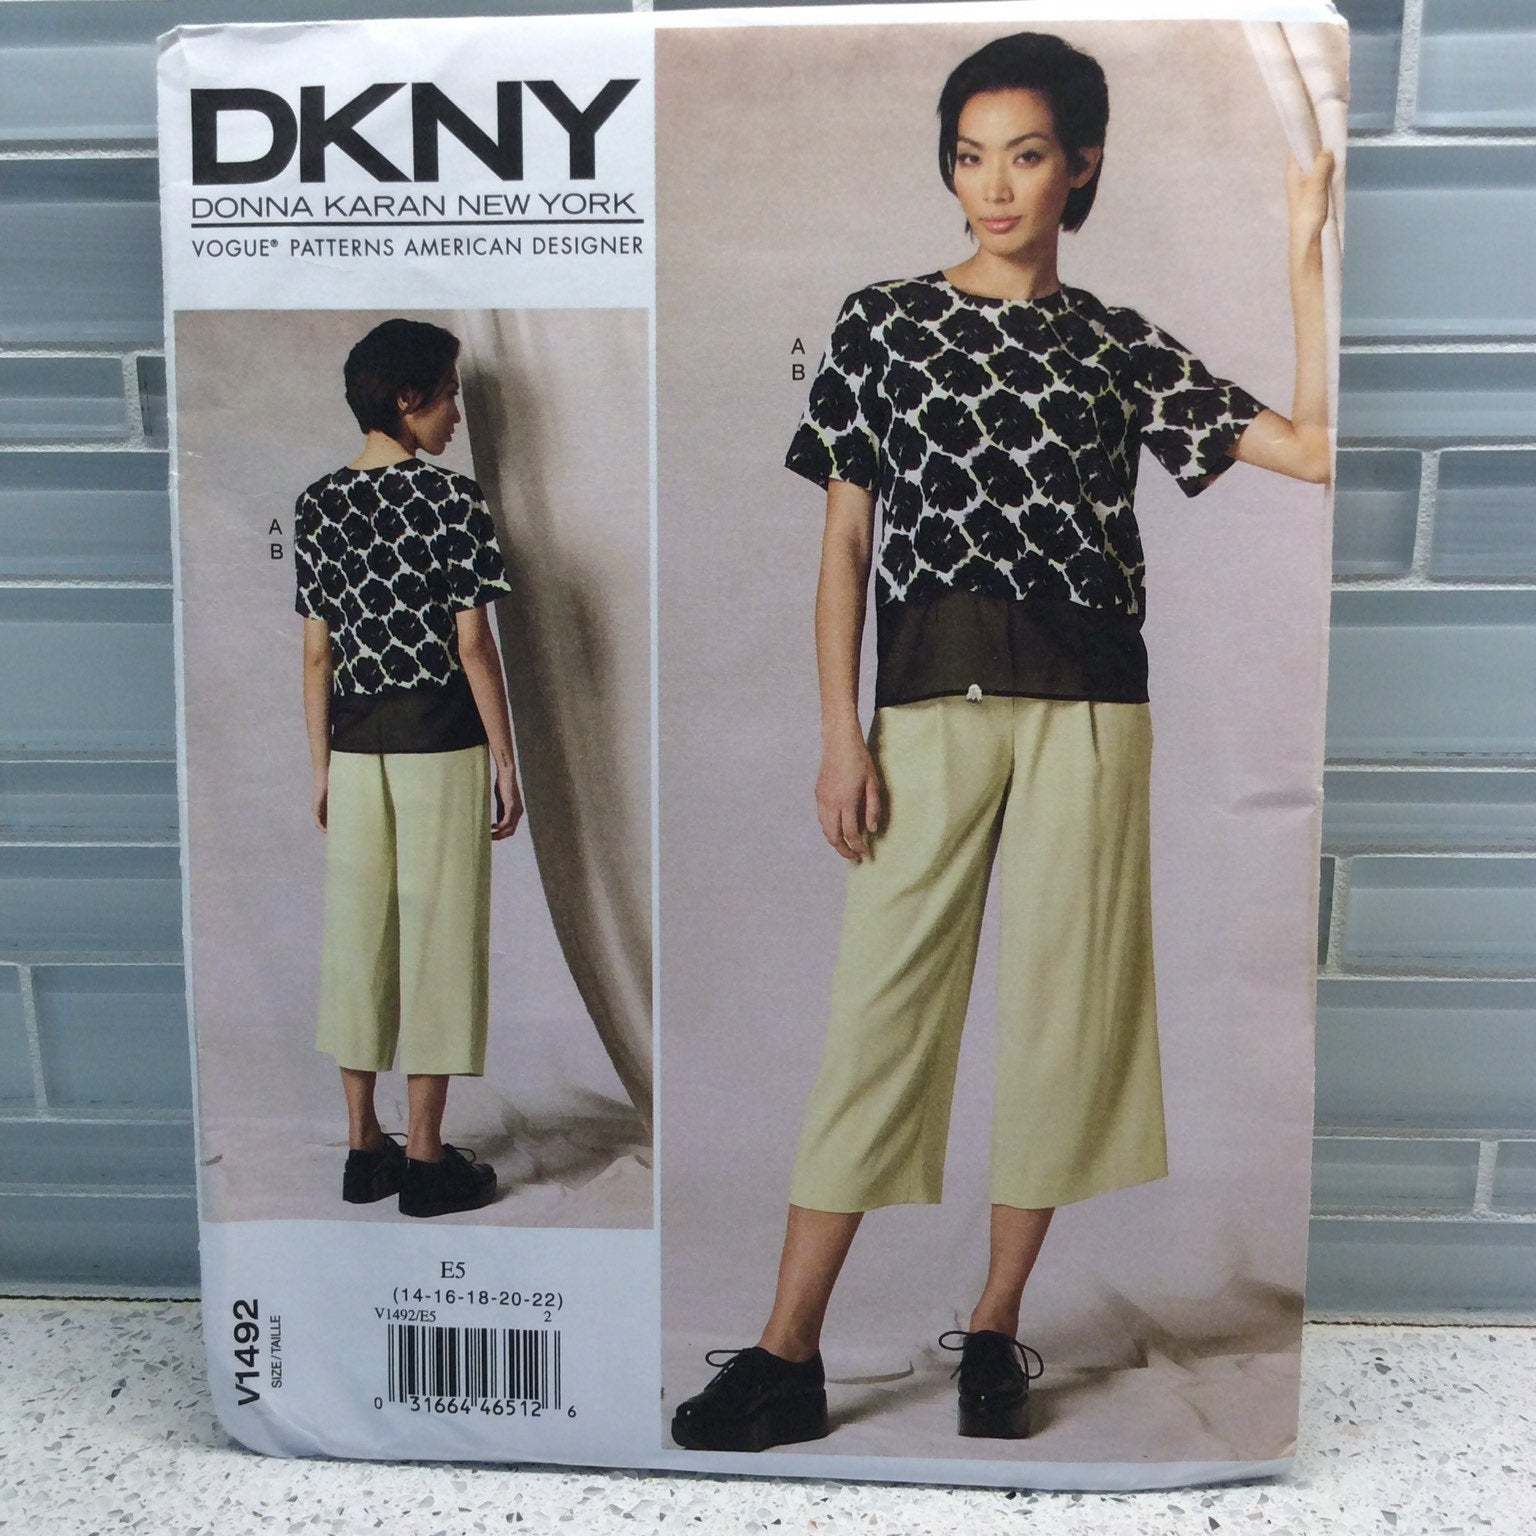 Vogue Sewing Pattern DKNY Donna Karan V1492 E5 14 16 18 20 22 Loose Fitted Top a